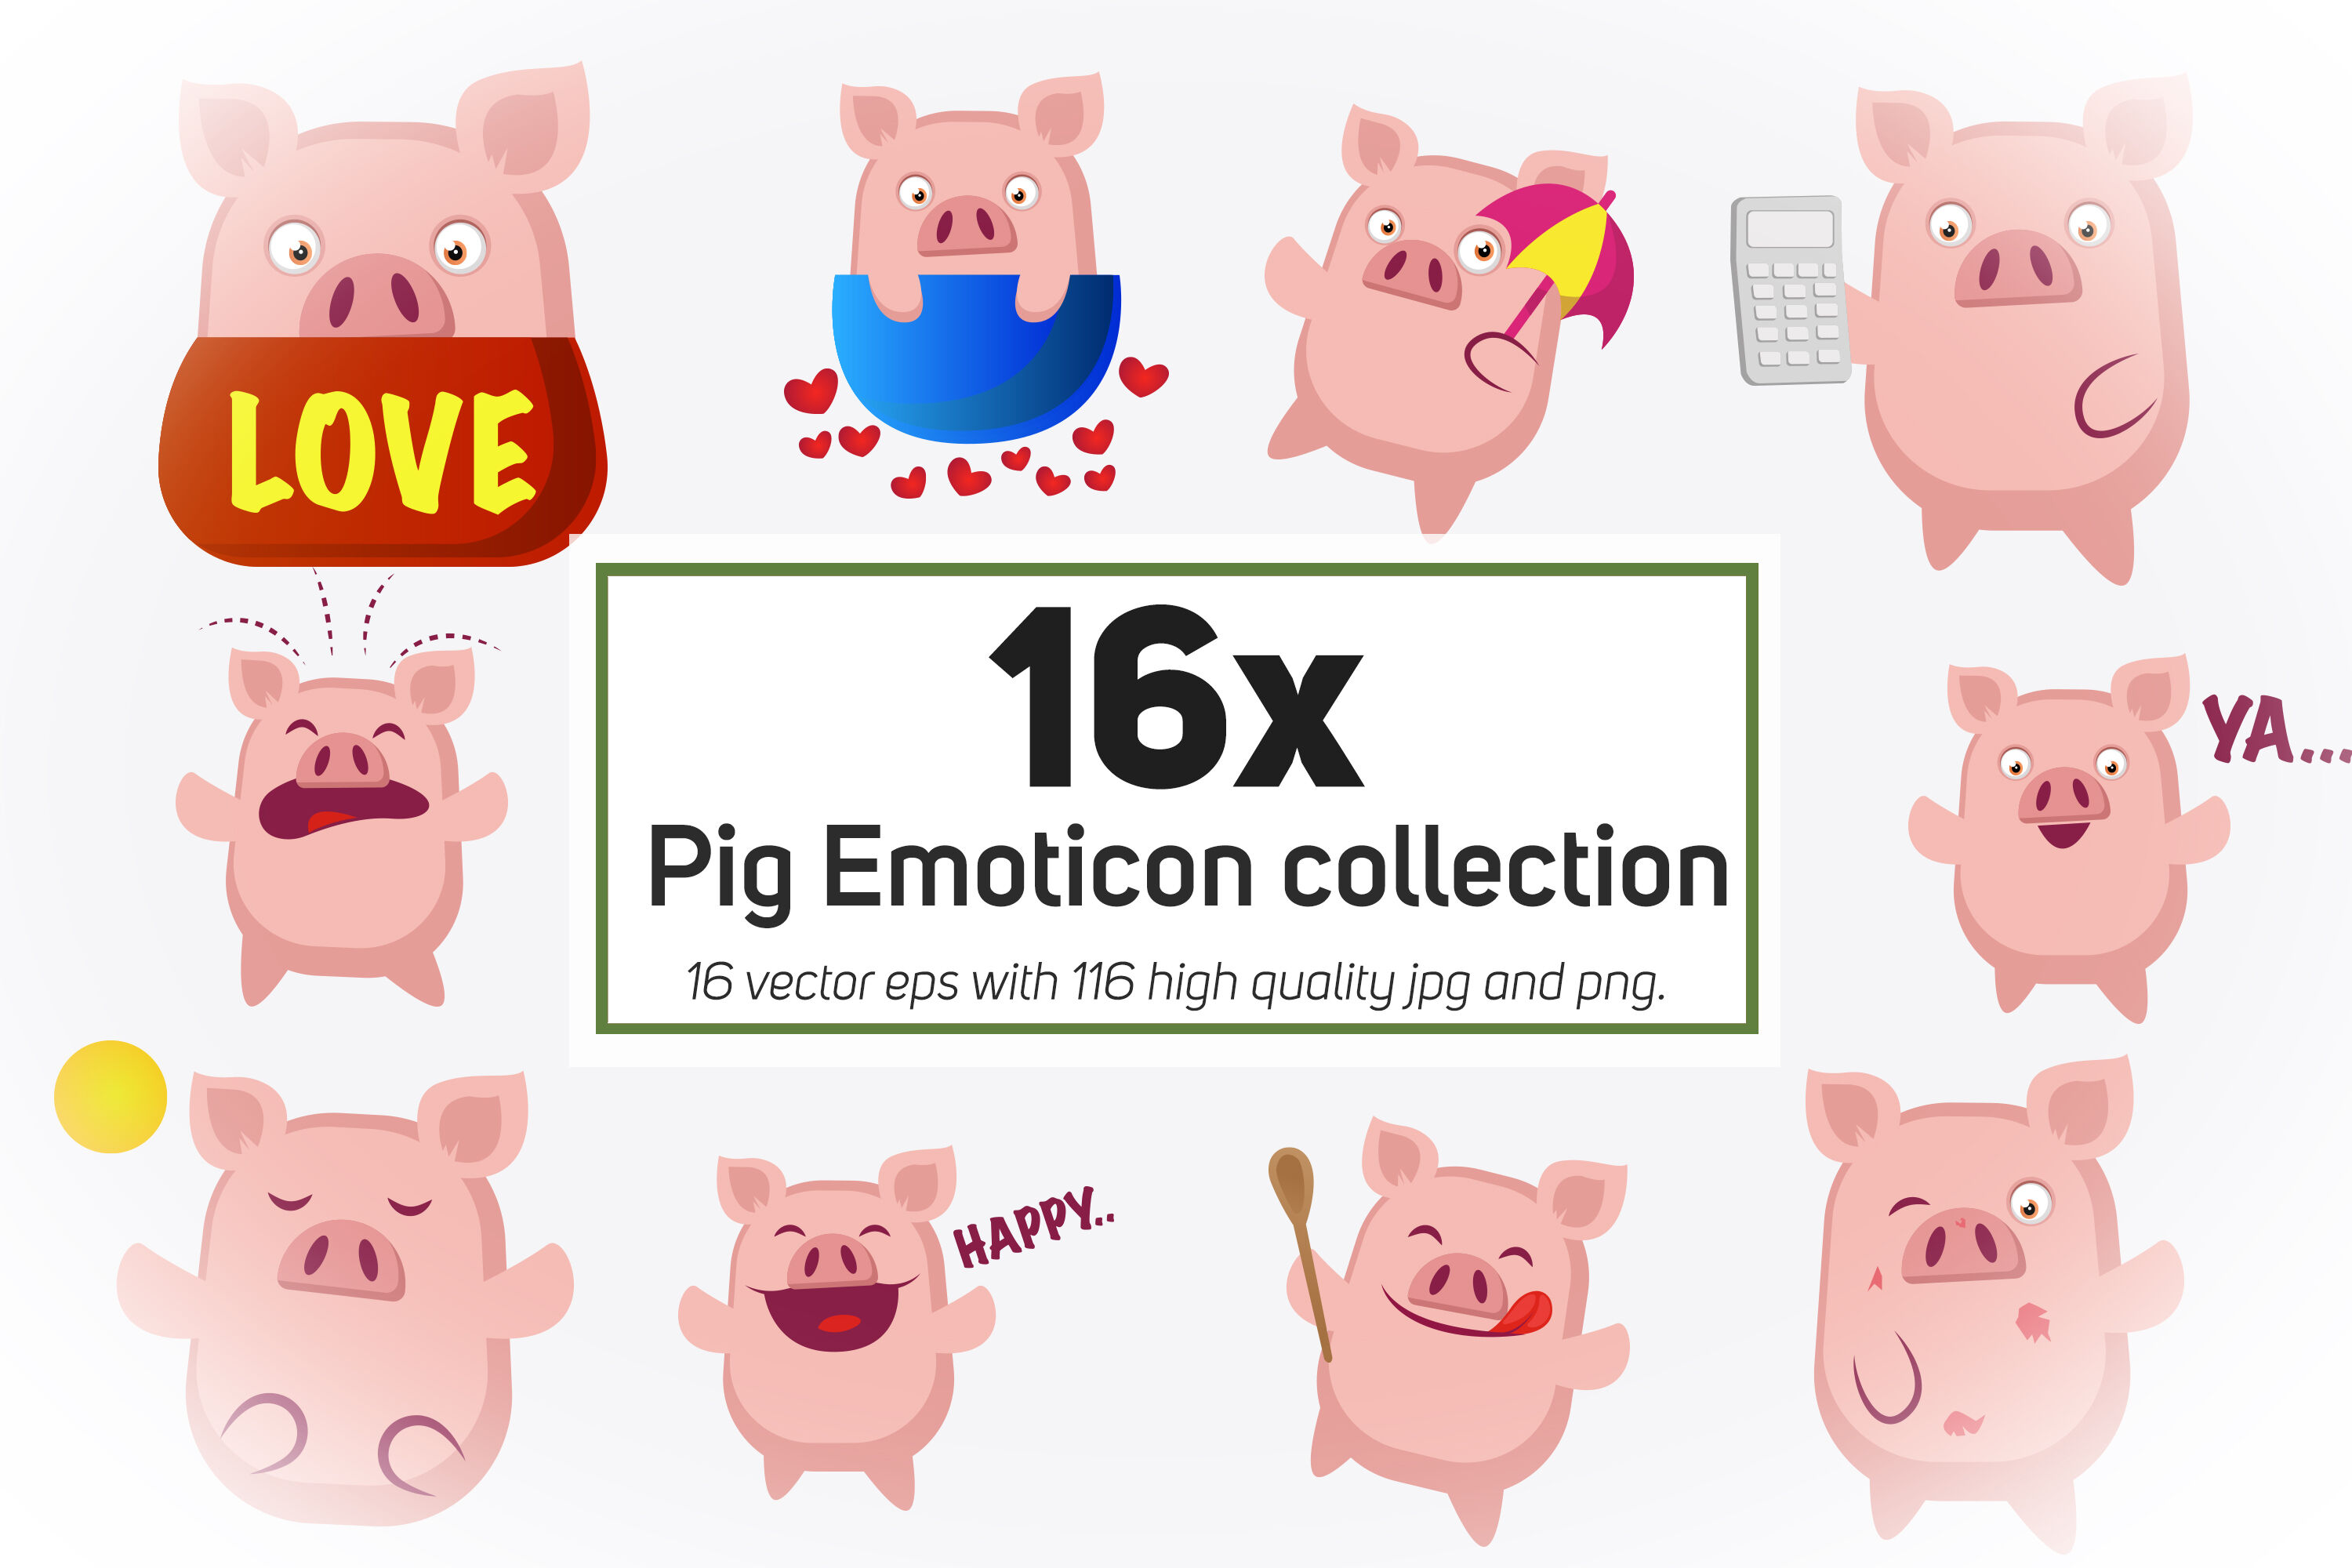 16x Pig Emoticon Collection Illustration By Morphart